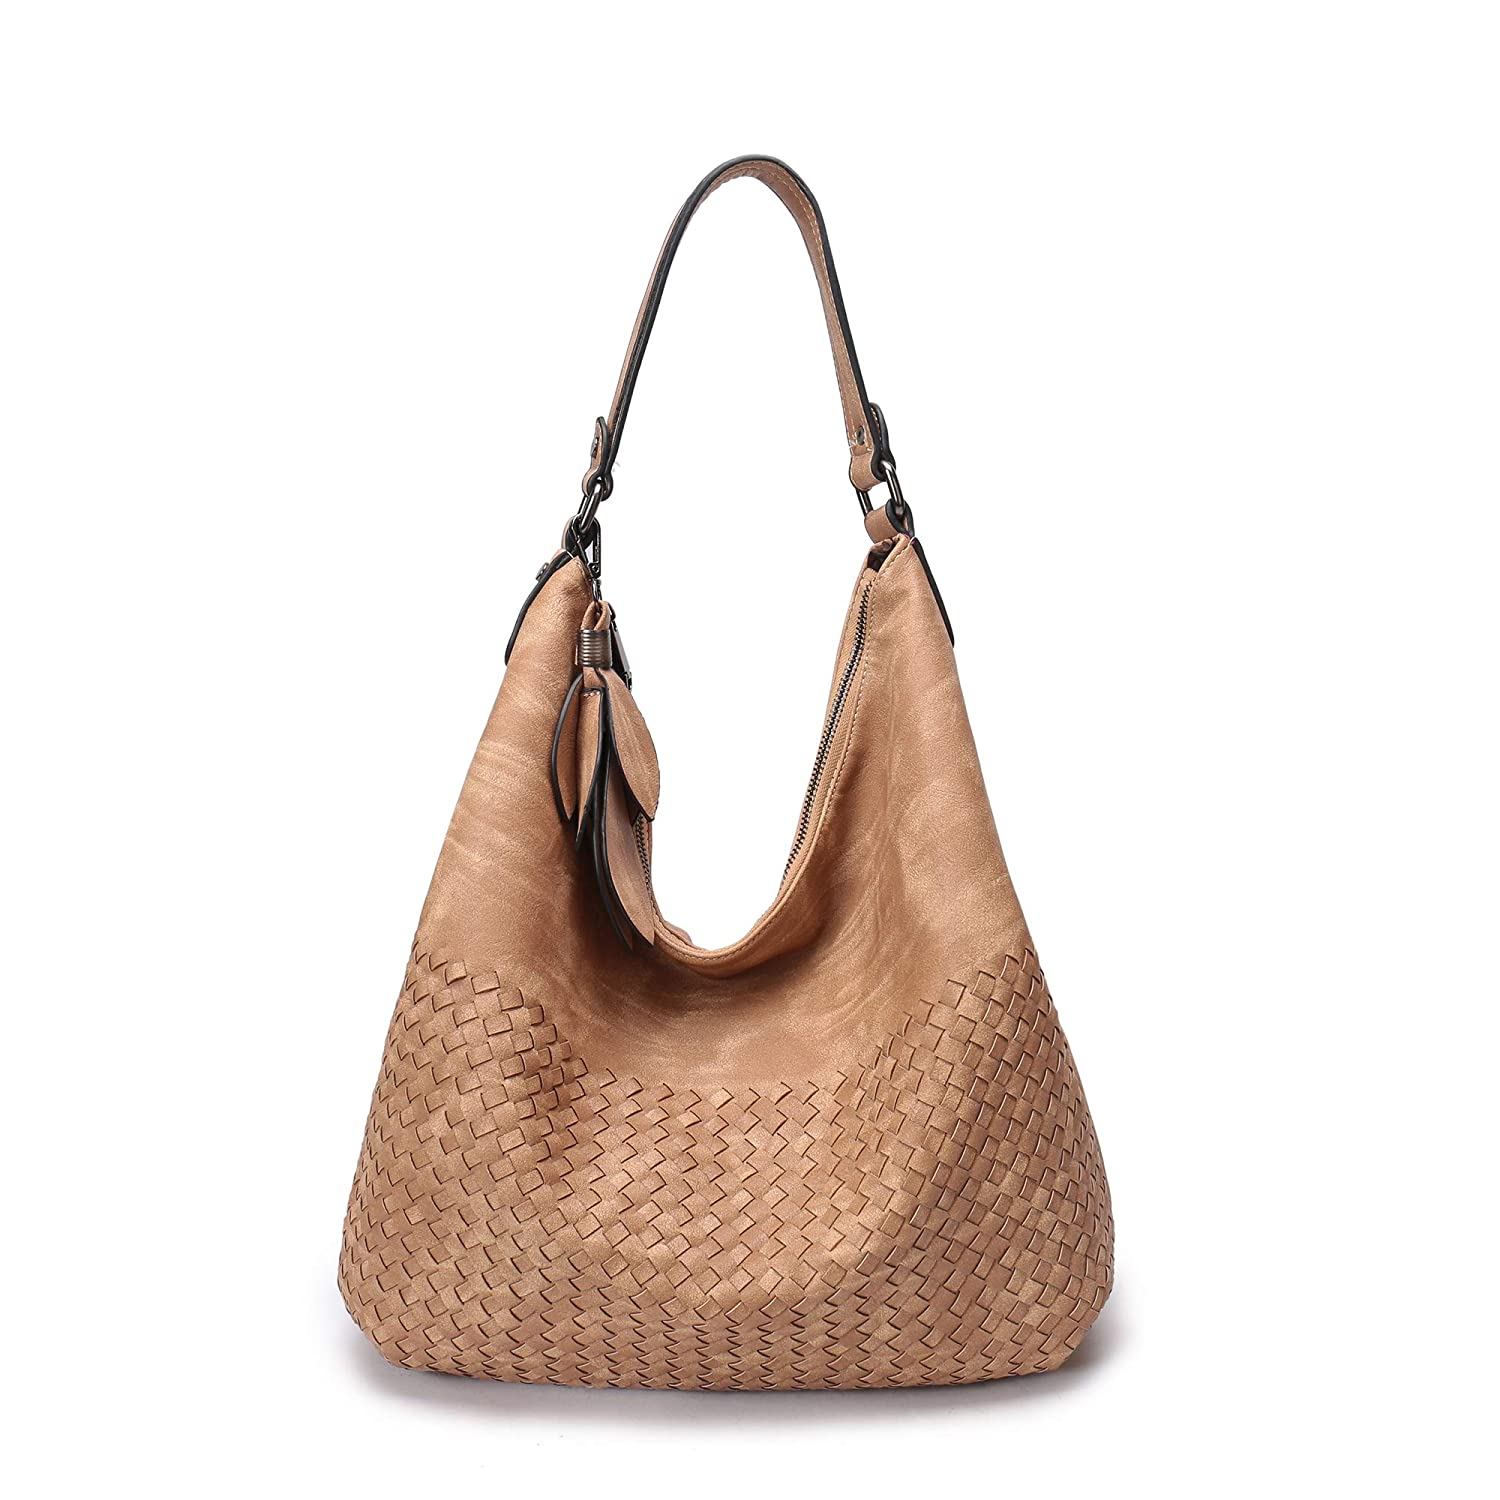 376826c2d86a GOOD MATERIAL -It is made of vintage PU Leather,lining and durable hardware  ,gold accents are well done. Size: 18.5*5.12*13.8Inch(L*W*H)